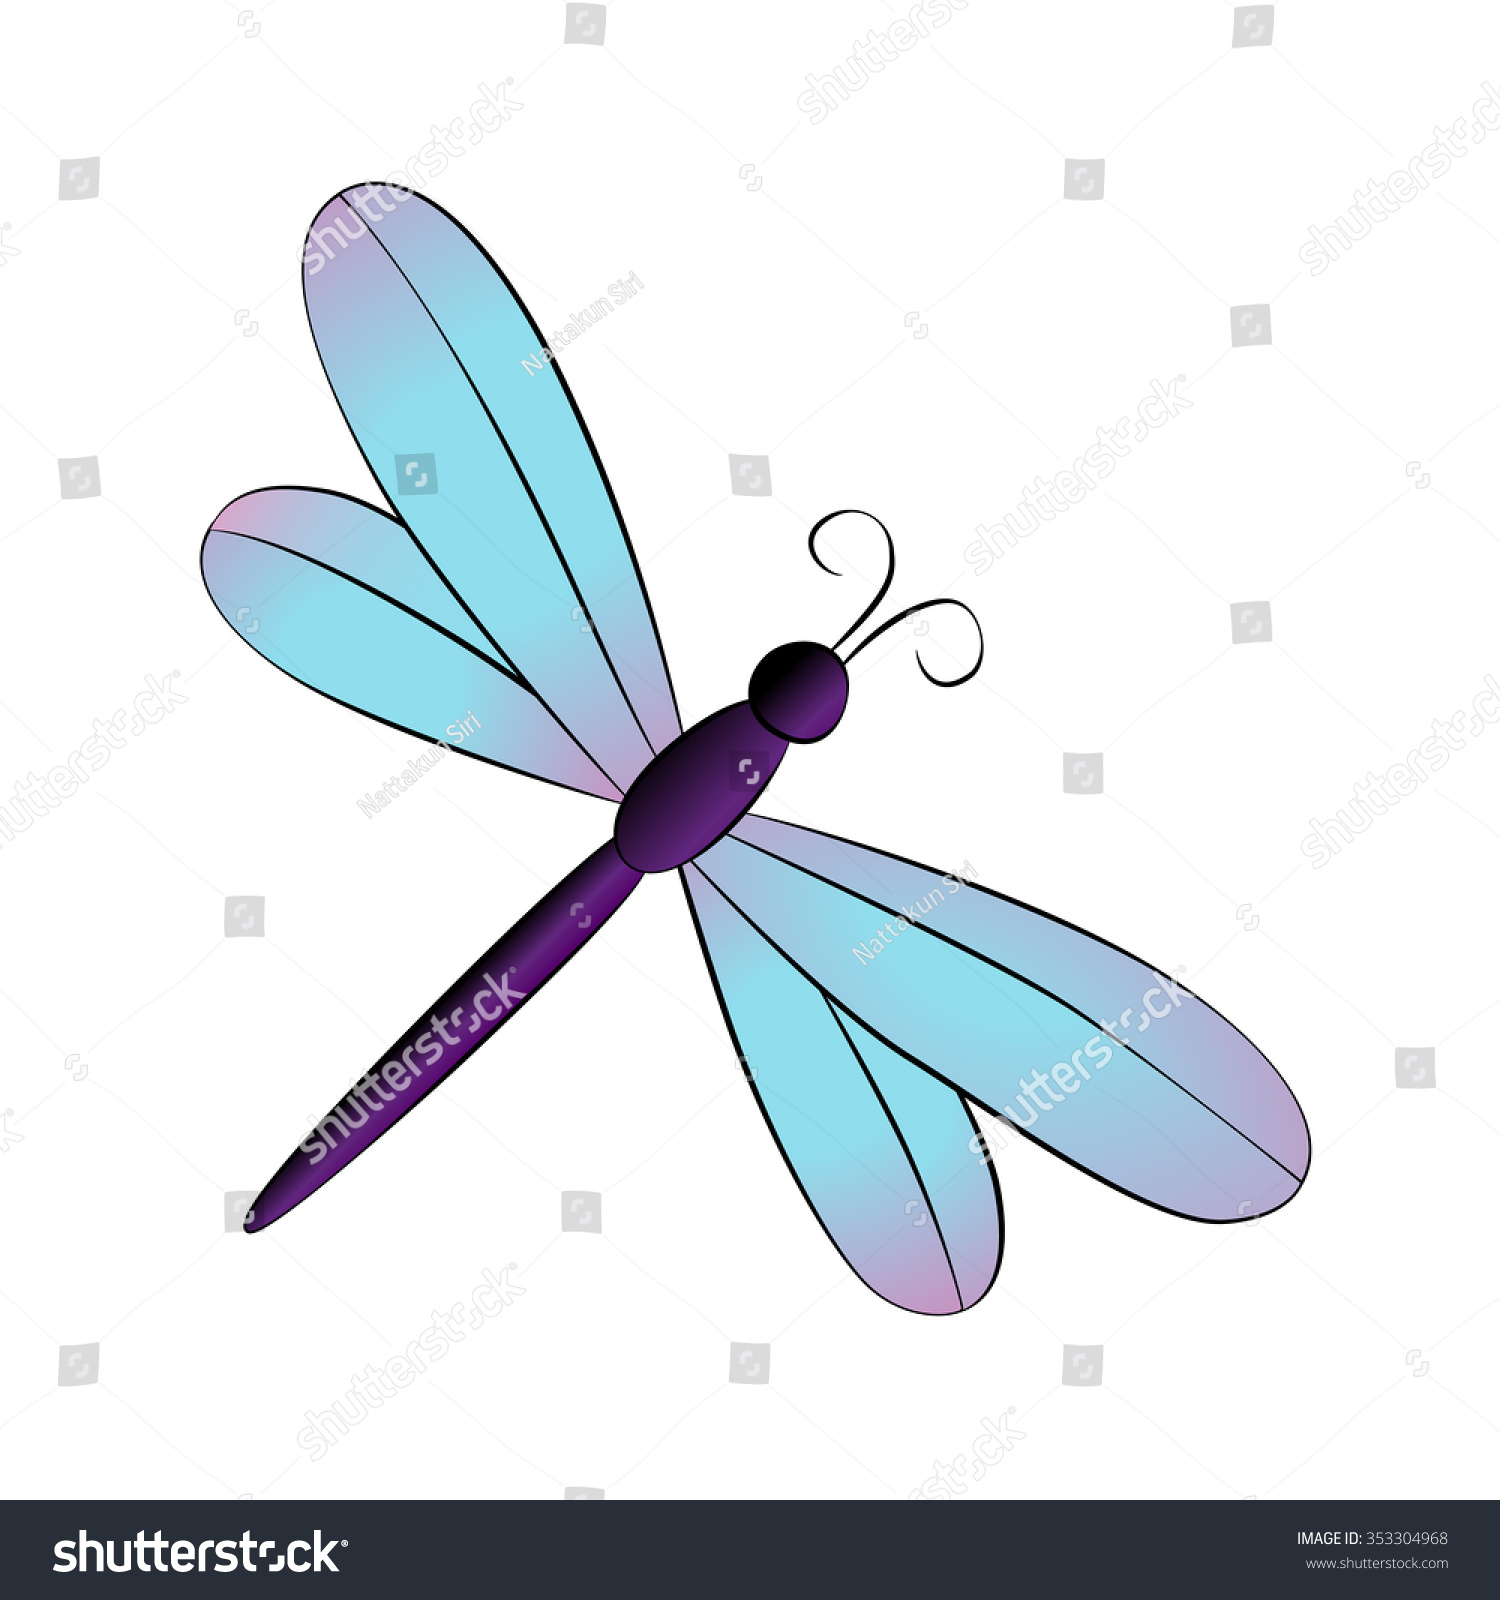 Cartoon Dragonfly Images Vector cartoon dragonfly on white background ...